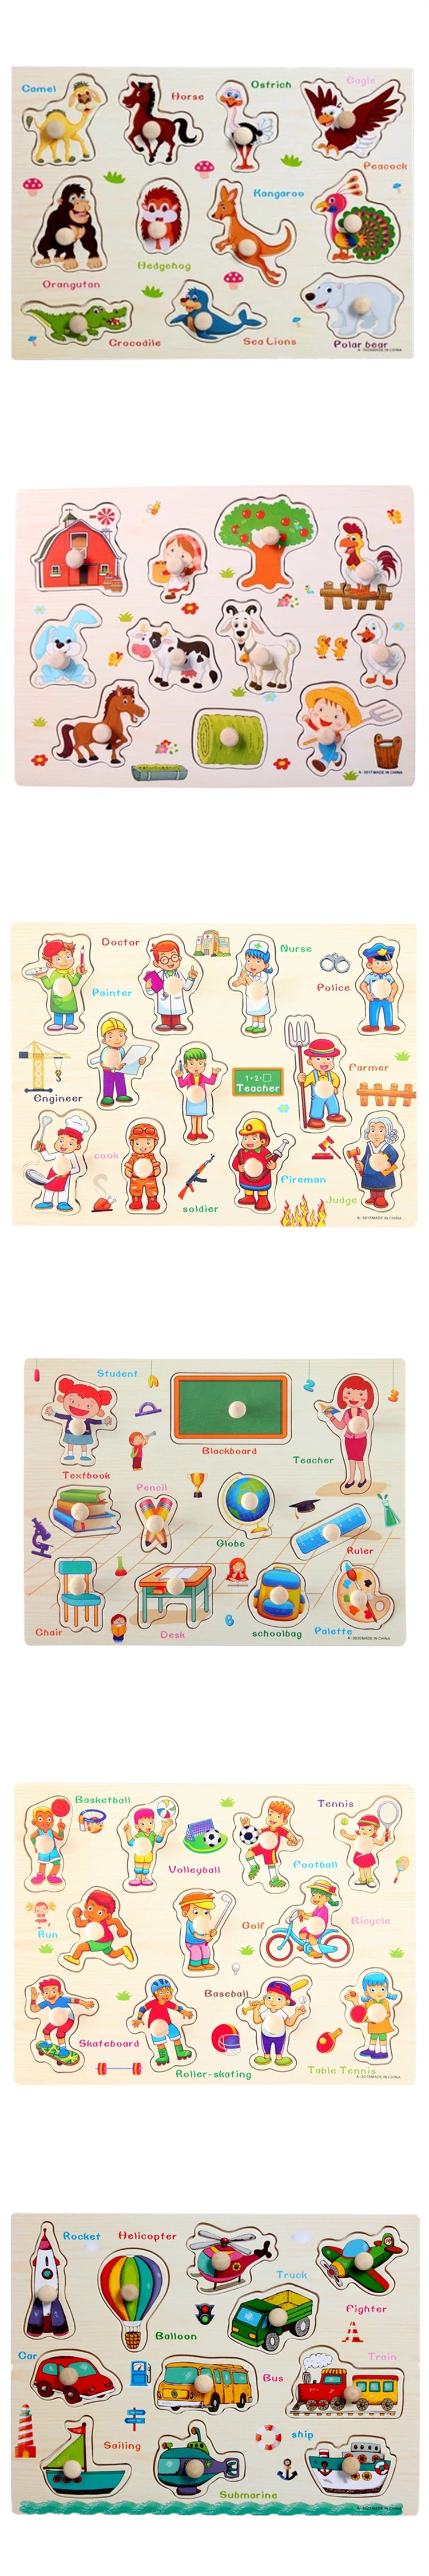 Little B House 1 pcs Preschool Educational Wooden Puzzle Toy Wooden Toy -BT43-Transportations